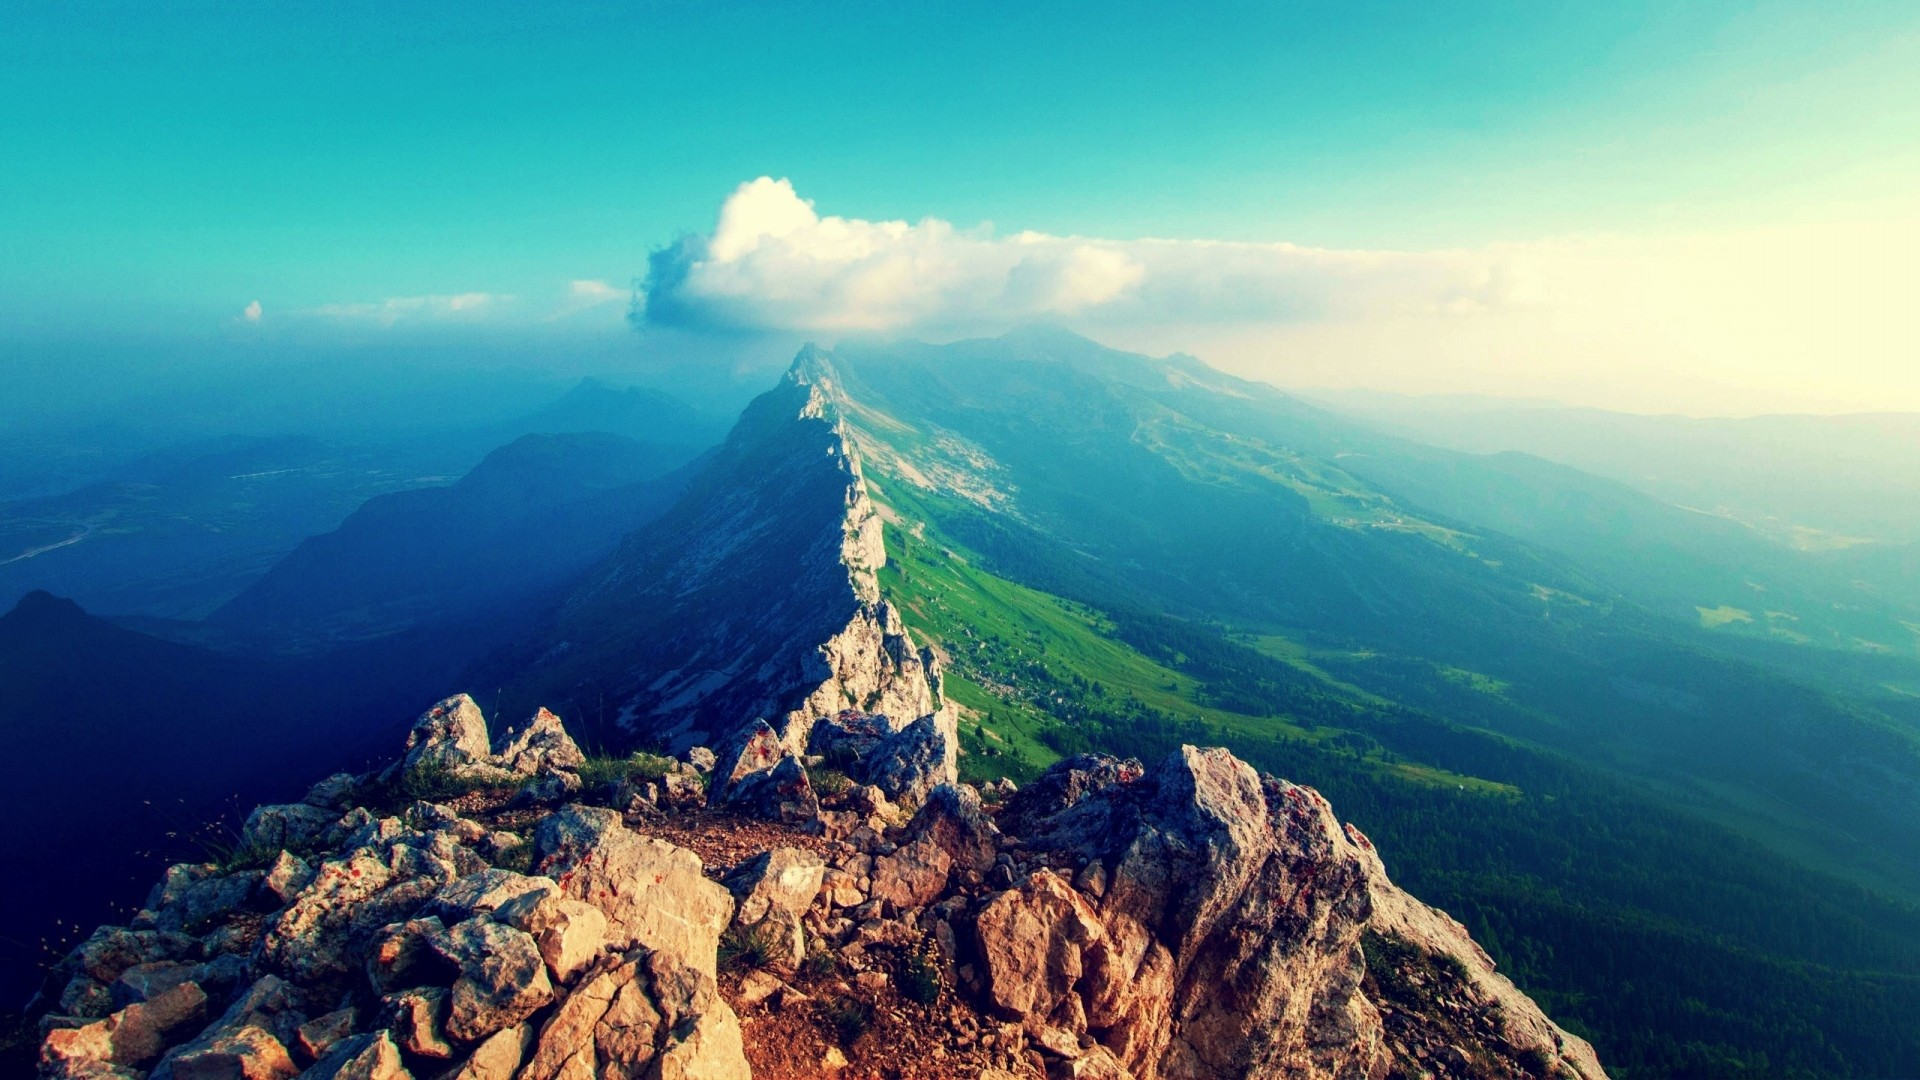 … Background Full HD 1080p. Wallpaper mountains, sky, clouds,  mountain range, stones